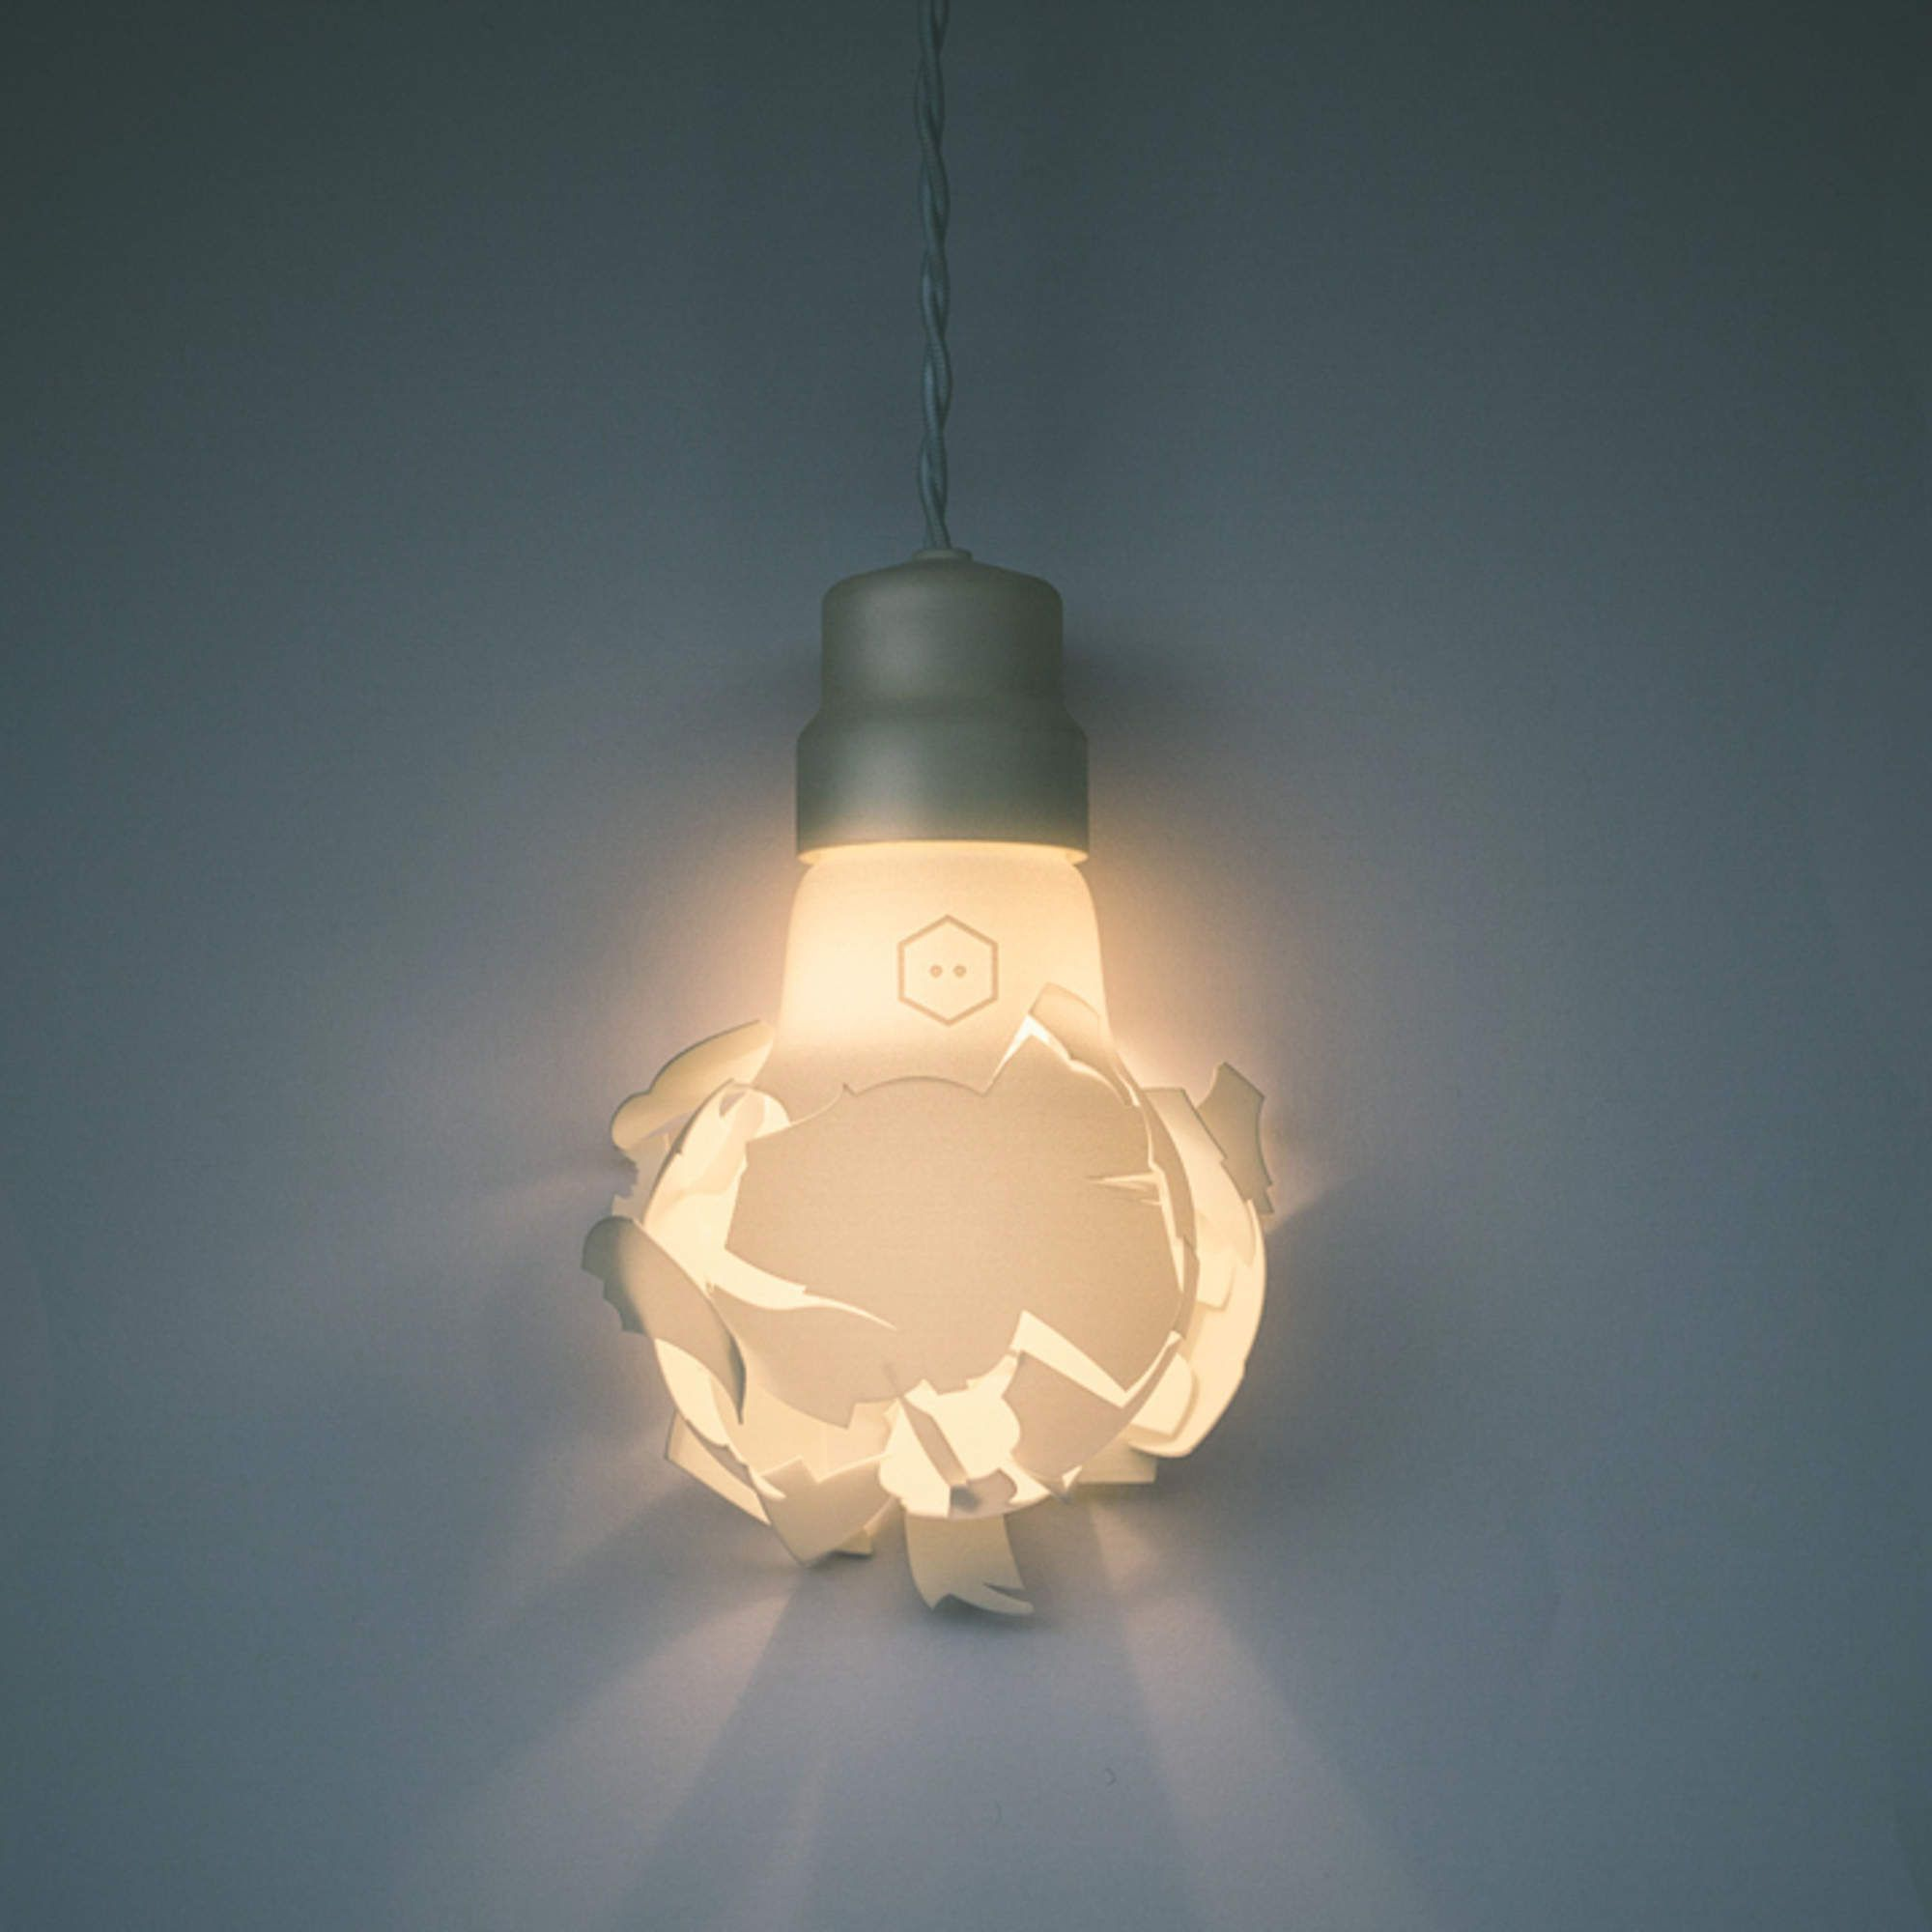 Light Up Your Place With Exploding Lamps